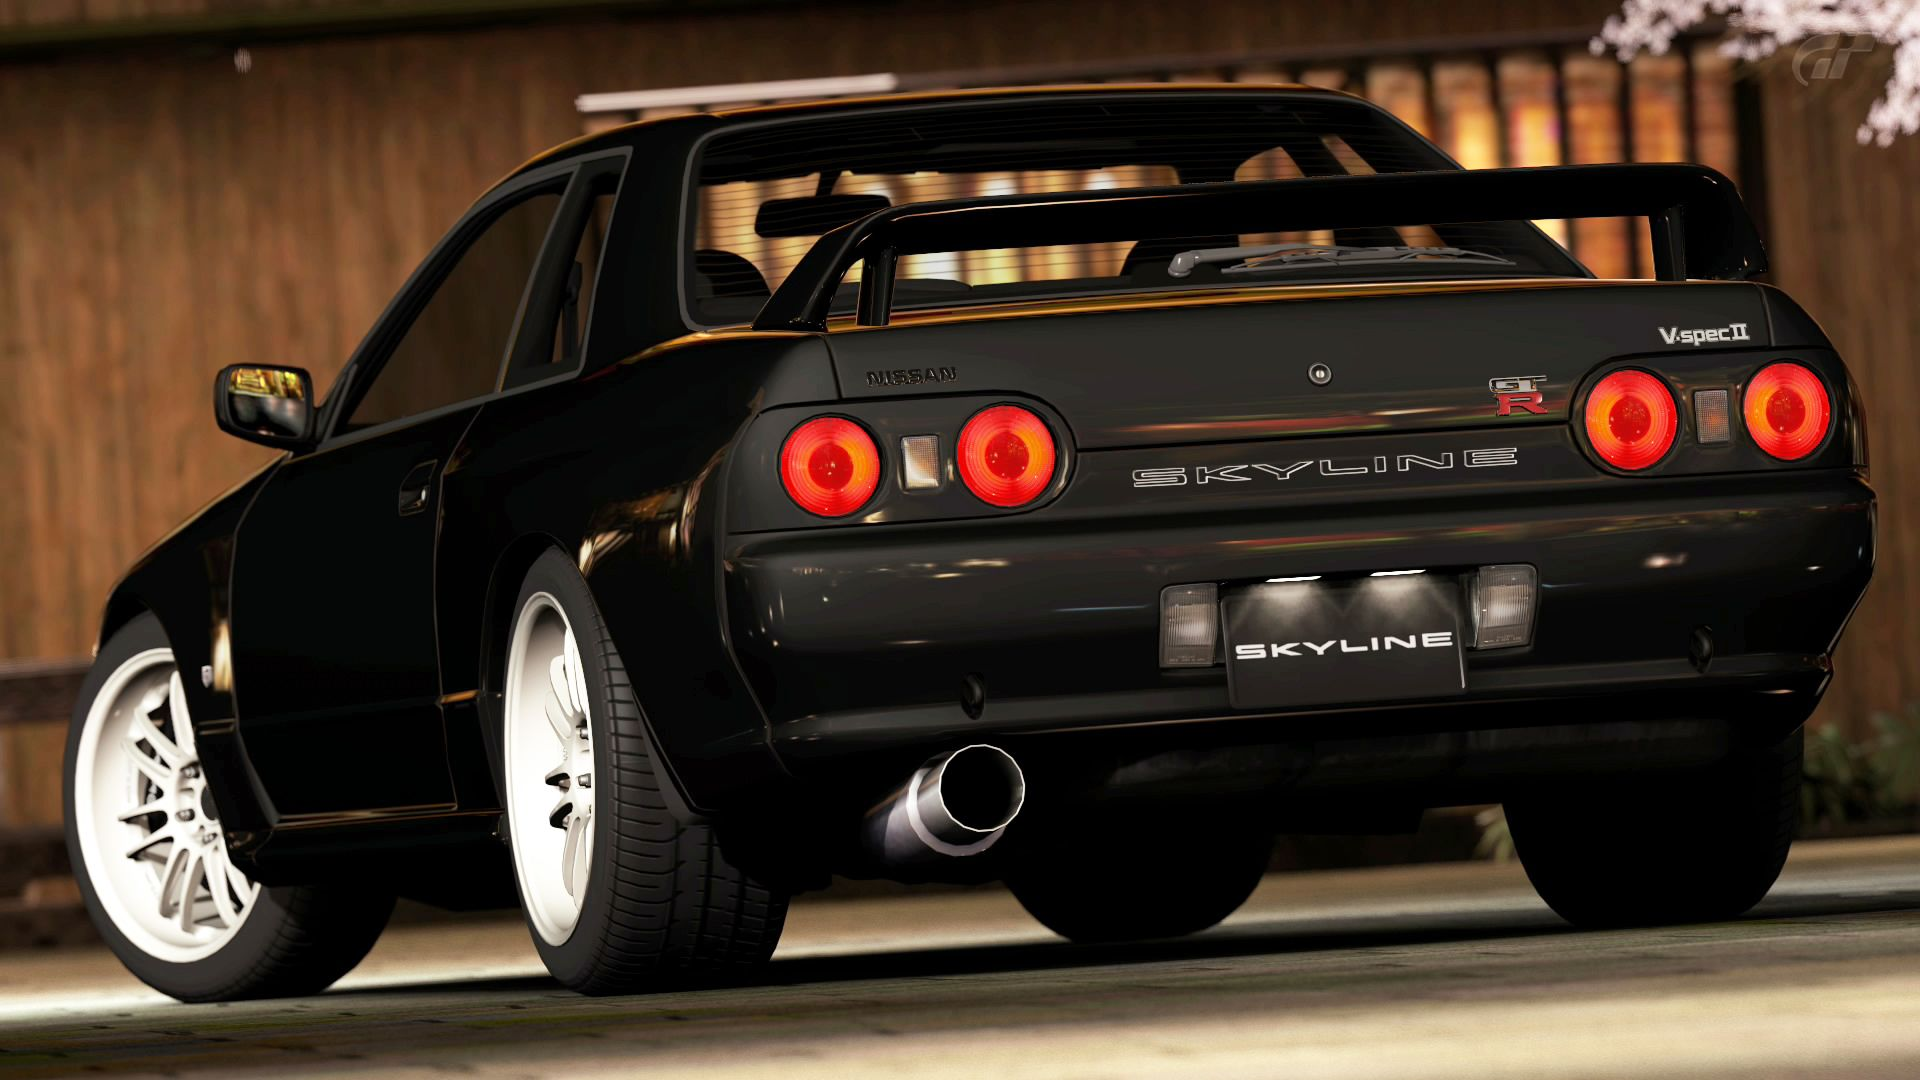 Nissan Skyline R32 Wallpaper